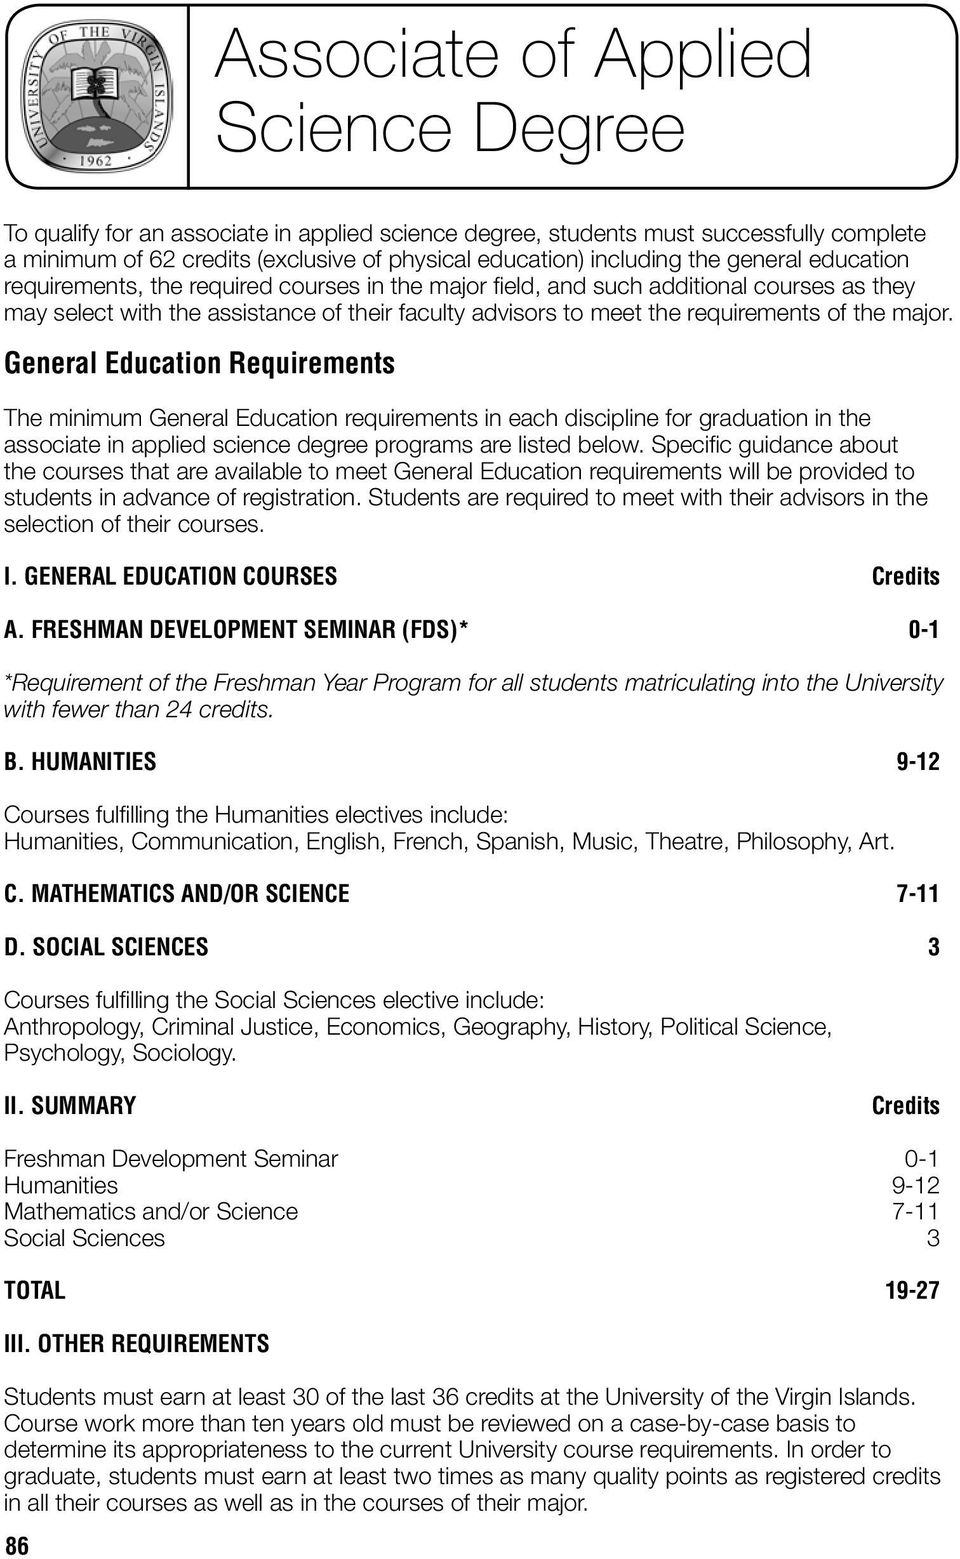 major. General Education Requirements The minimum General Education requirements in each discipline for graduation in the associate in applied science degree programs are listed below.